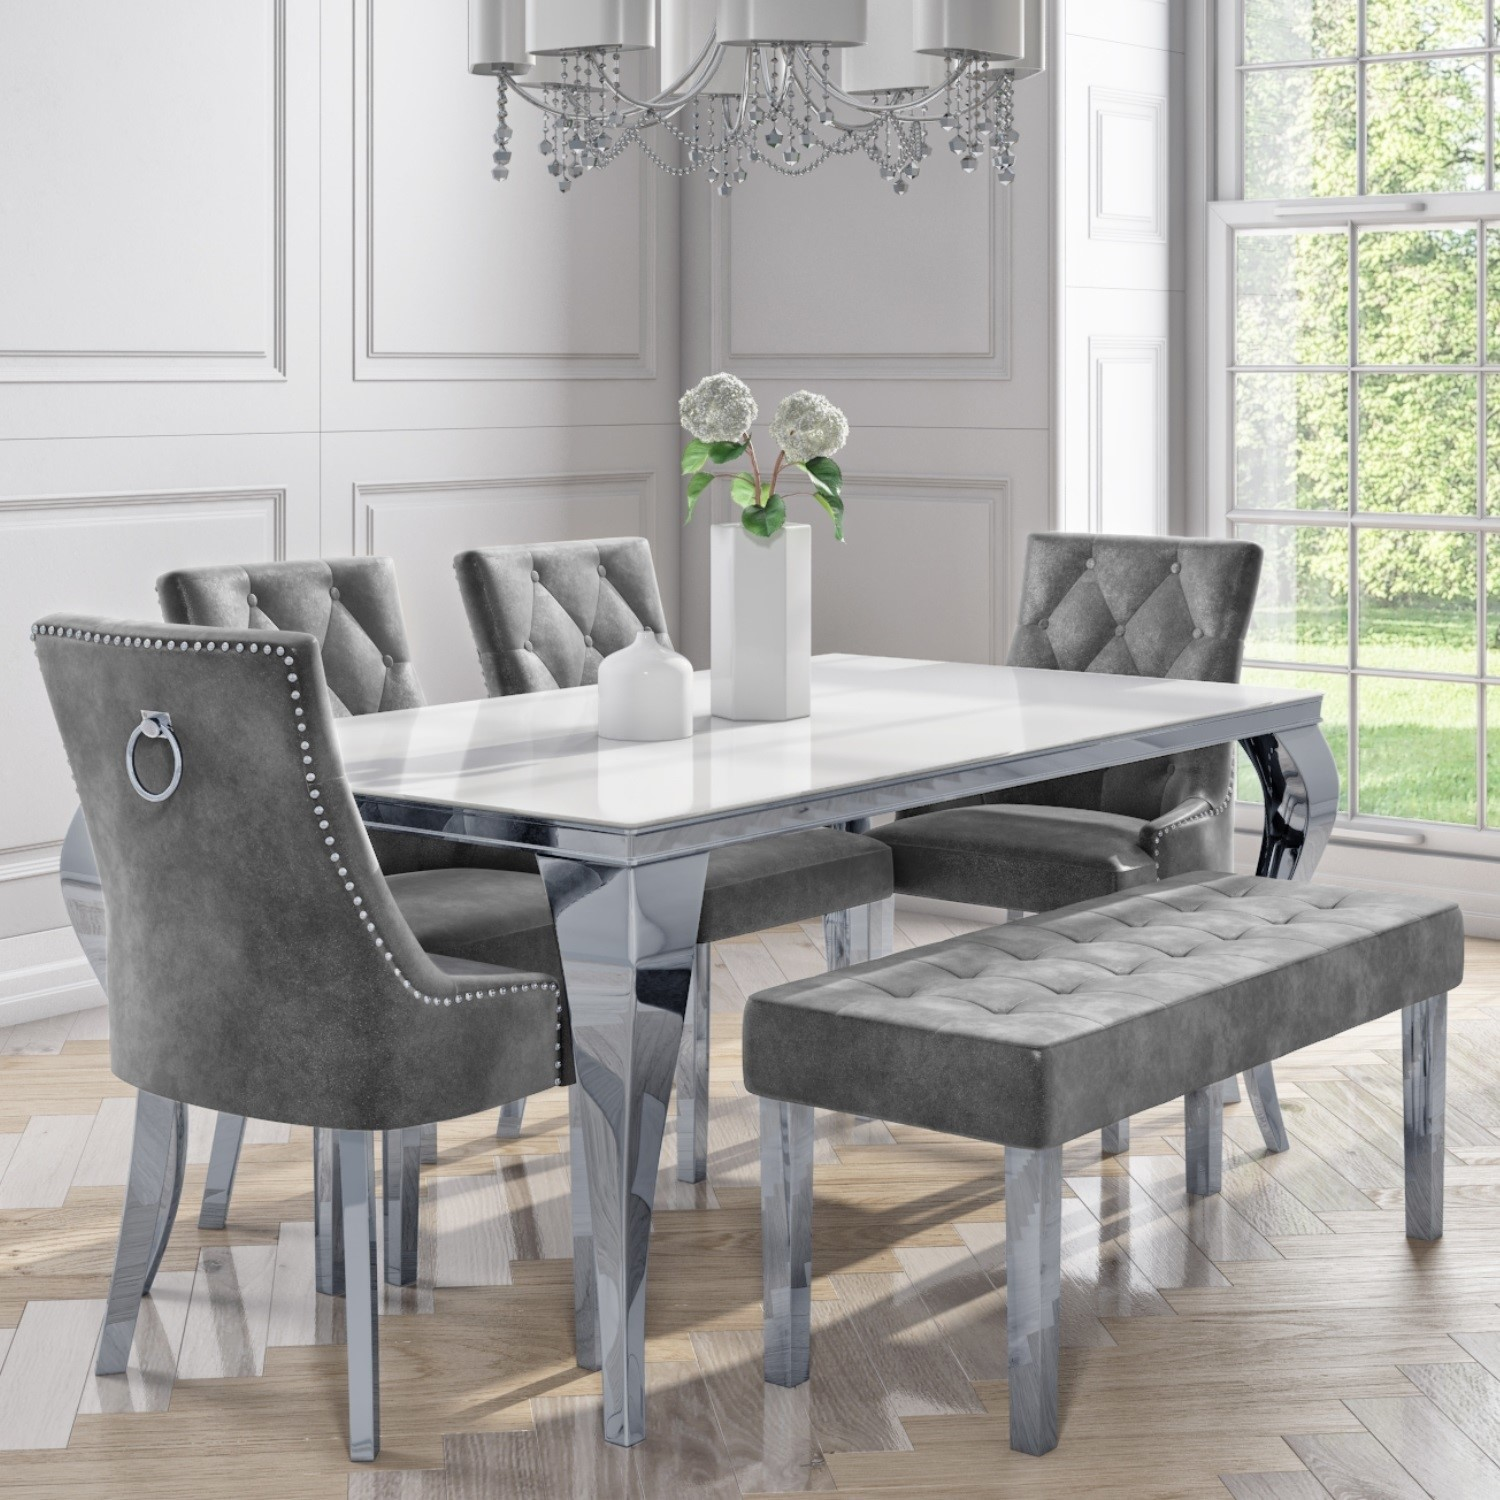 White Mirrored Dining Table With 4 Grey Velvet Chairs 1 Bench Bun Ane003 76678 Ebay